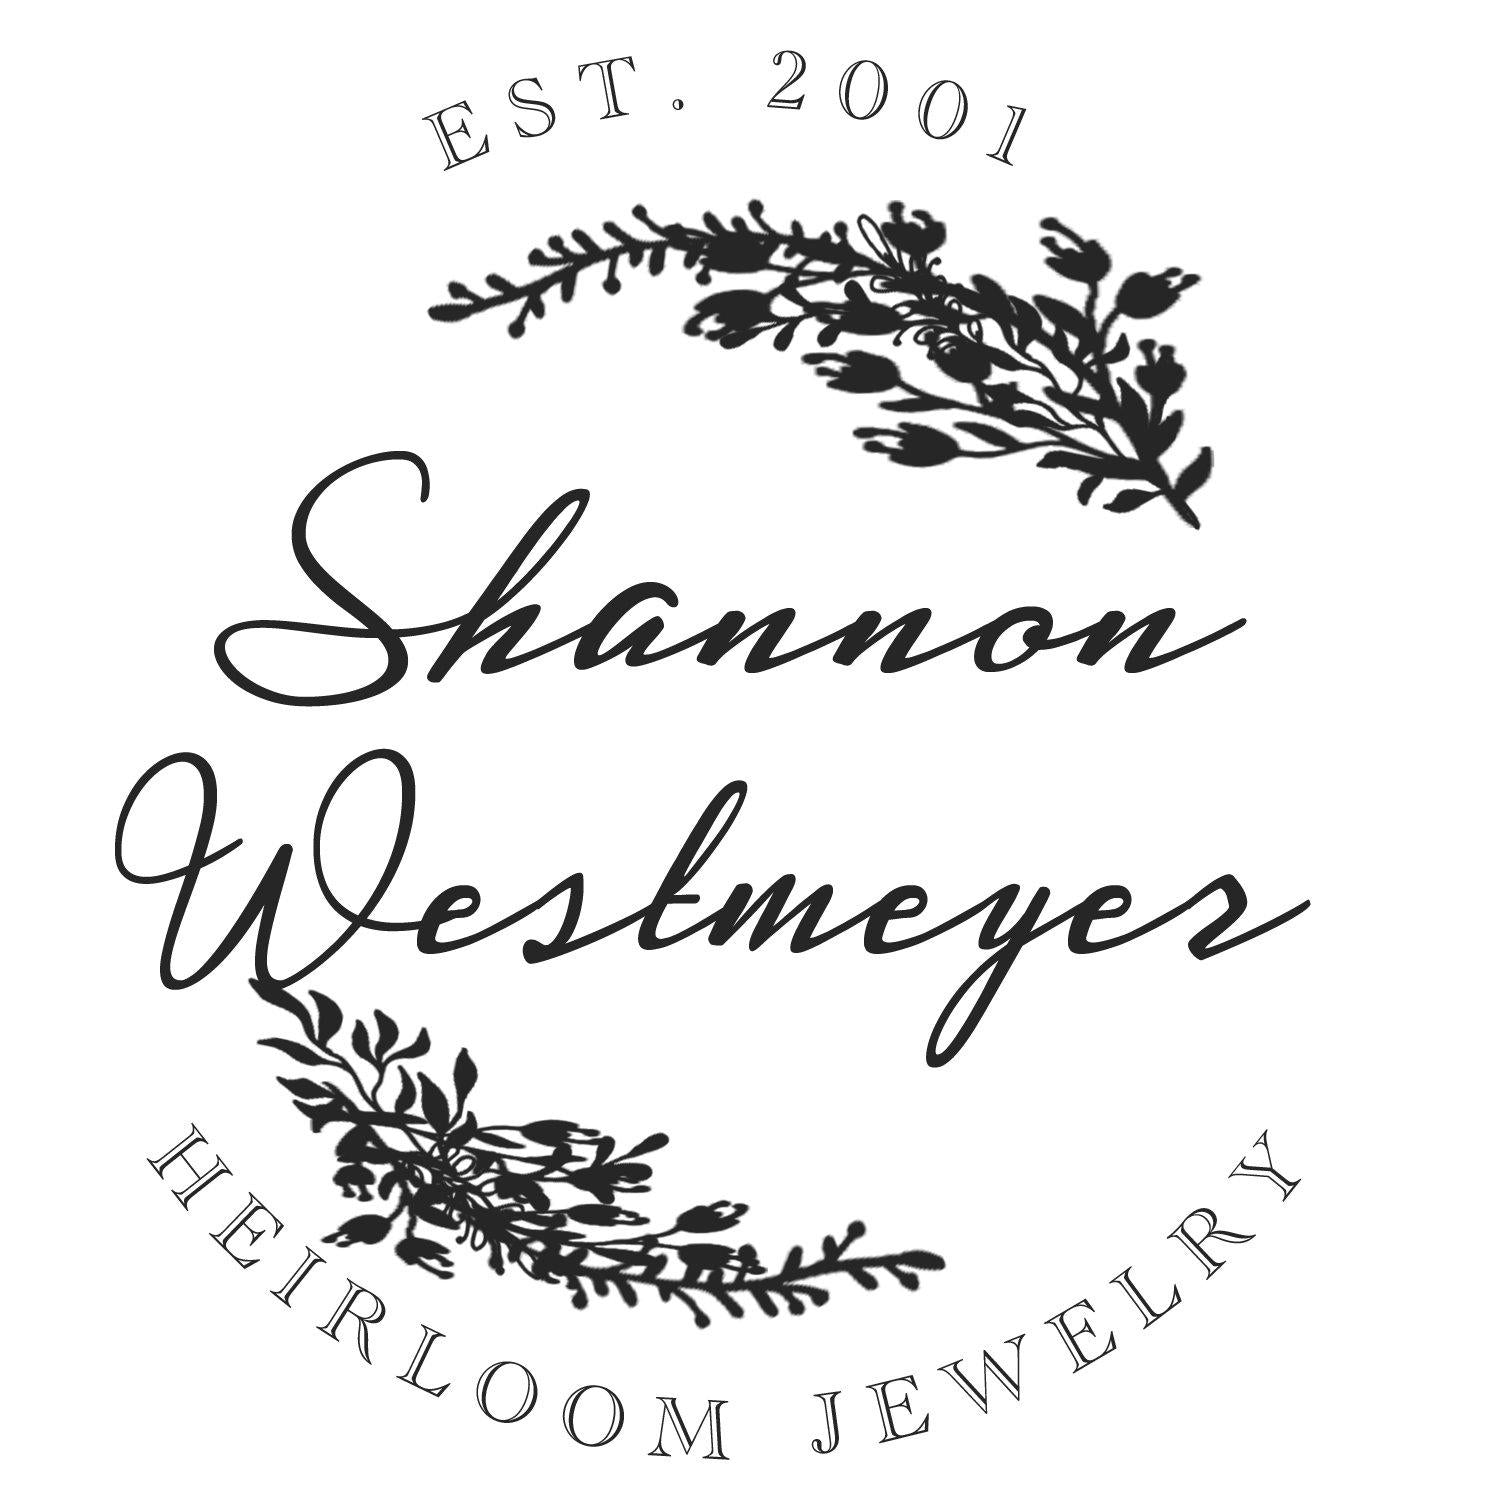 Private Listing for Donna-Shannon Westmeyer Jewelry